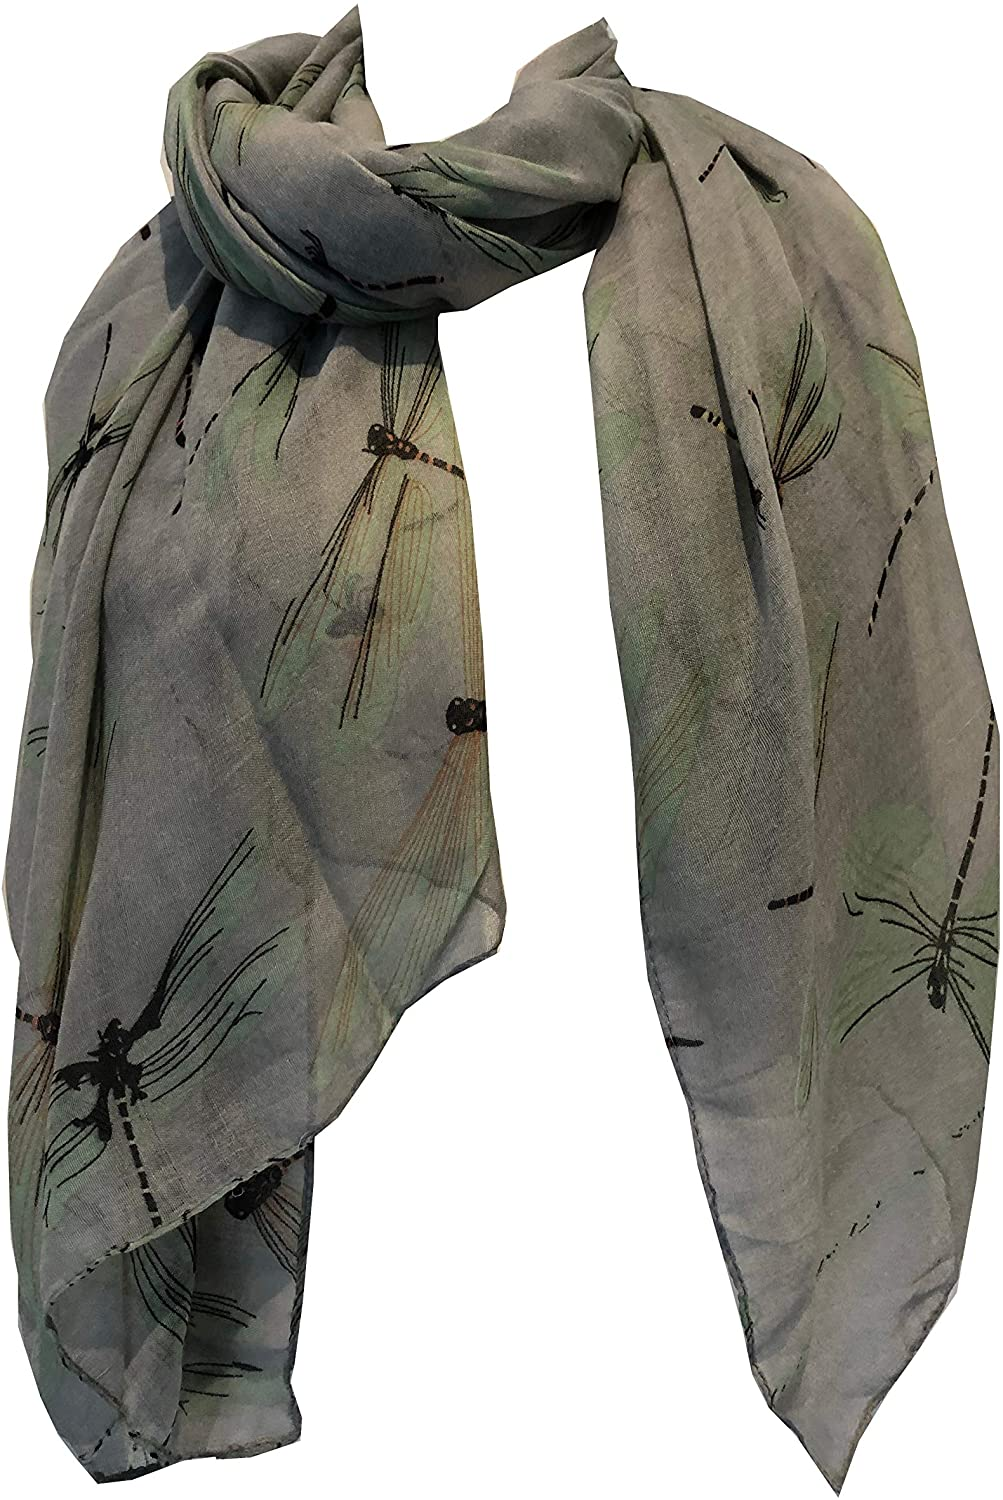 Pamper Yourself Now Grey with Coloured Big Dragonfly Design Scarf Lovely Soft Scarf Fantastic Gift